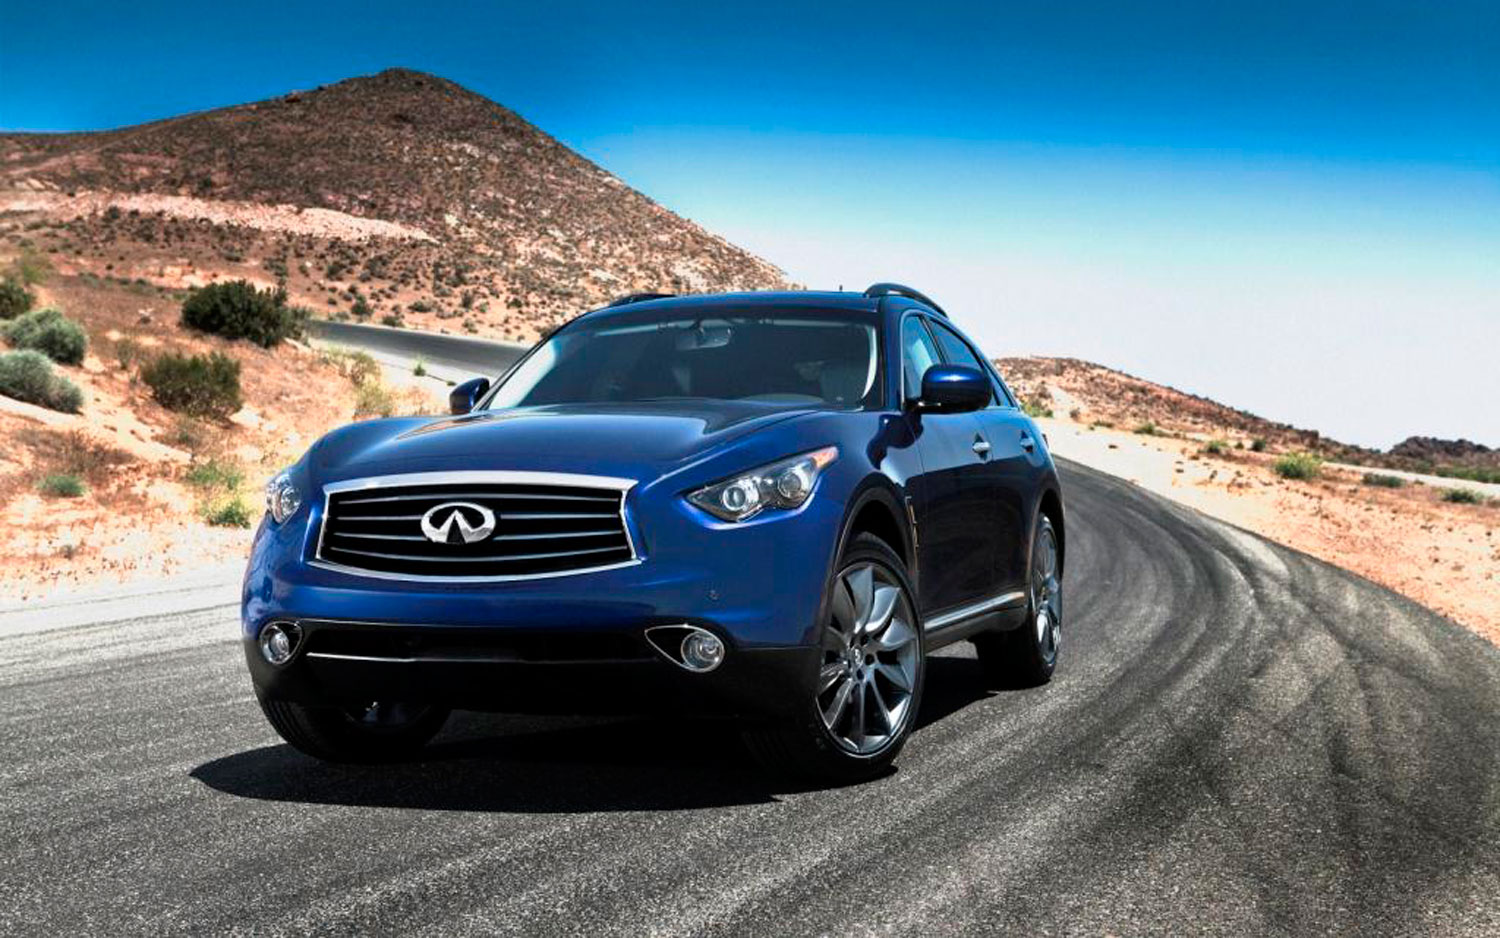 Updated 2012 Infiniti FX Crossover To Start at $43,450, Photo Gallery Inside